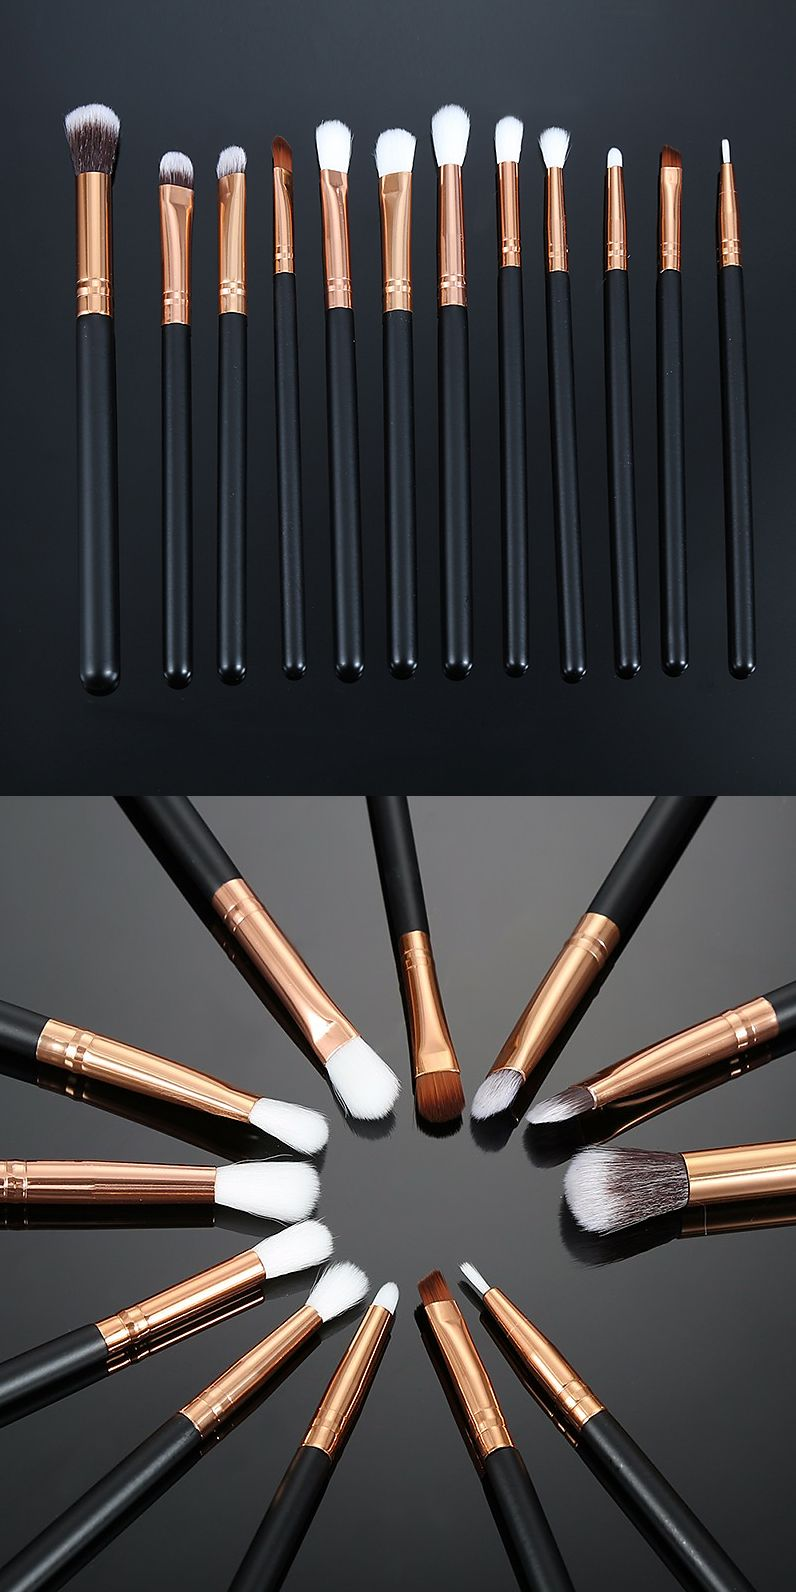 Pro makeup brushes set. Here's a board of the best makeup